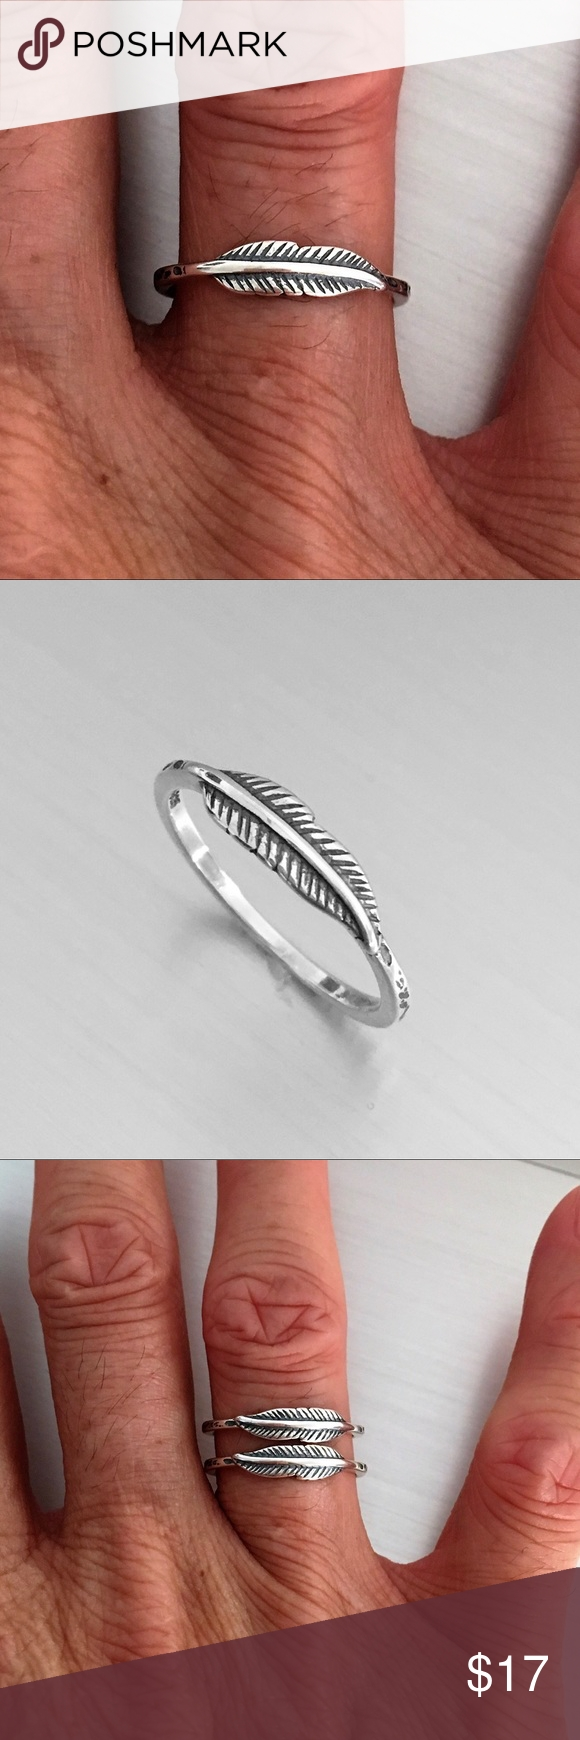 Sterling Silver Tiny Feather Ring | Feather Ring, Toe Rings And Pertaining To Most Up To Date Feather Toe Rings (View 5 of 15)